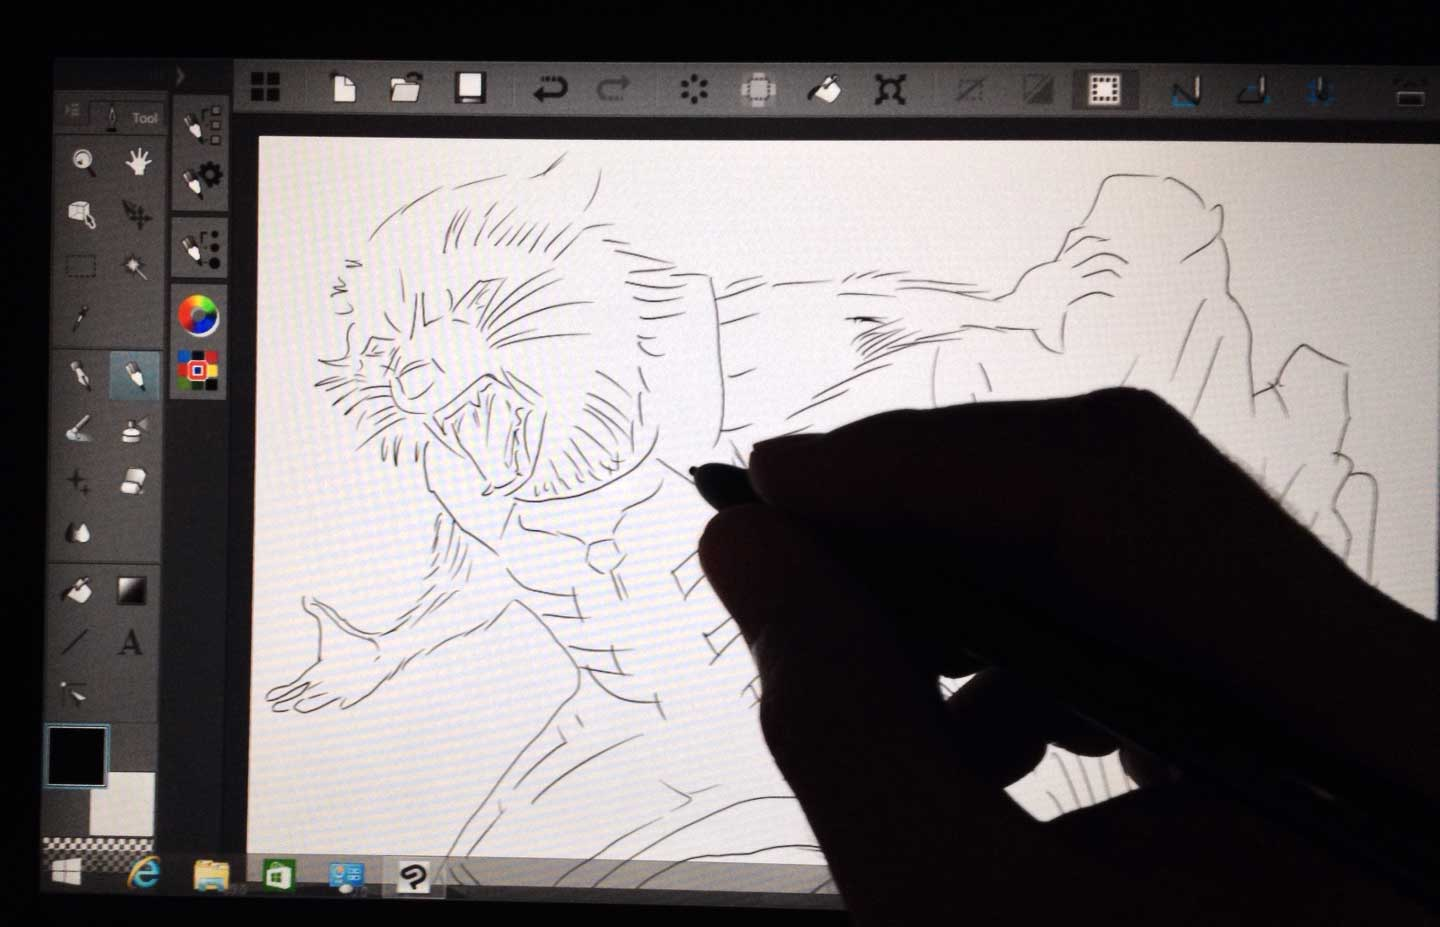 Sketching in Clip Studio Paint. Not pushing the hardware too hard, the drawing experience feels comparable to any other Wacom tablet pc.